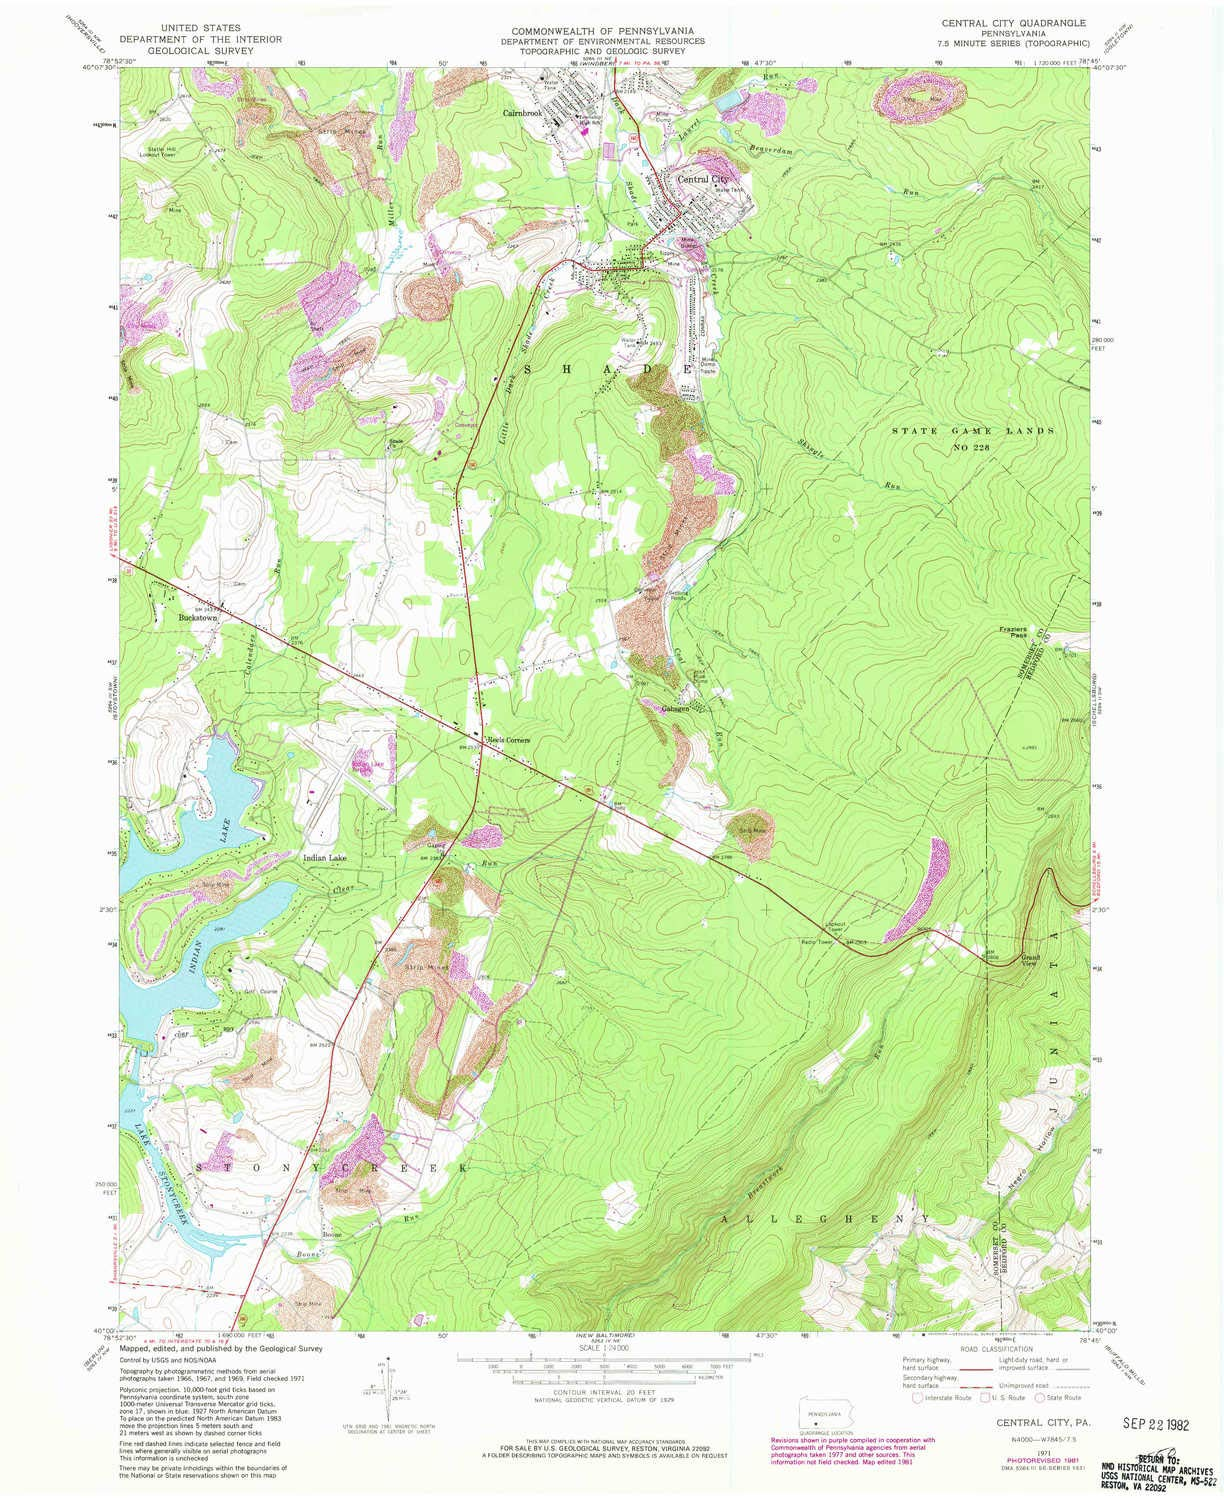 Amazon.com : YellowMaps Central City PA topo map, 1:24000 ... on indian lake central city pa, map of pennsylvania ny border, map of center city pa, map of central city ne, south central pa, topographic map of central pa, pennsylvania county map pa, map of lancaster pa city streets, map se pa, counties in central pa, map of central pennsylvania, map of oakland and surrounding cities, map of center city philadelphia, old maps of western pa, map of west central pa, map of central pa area, map york pa, road map of central pa, city of uniontown pa, map of center city phila,